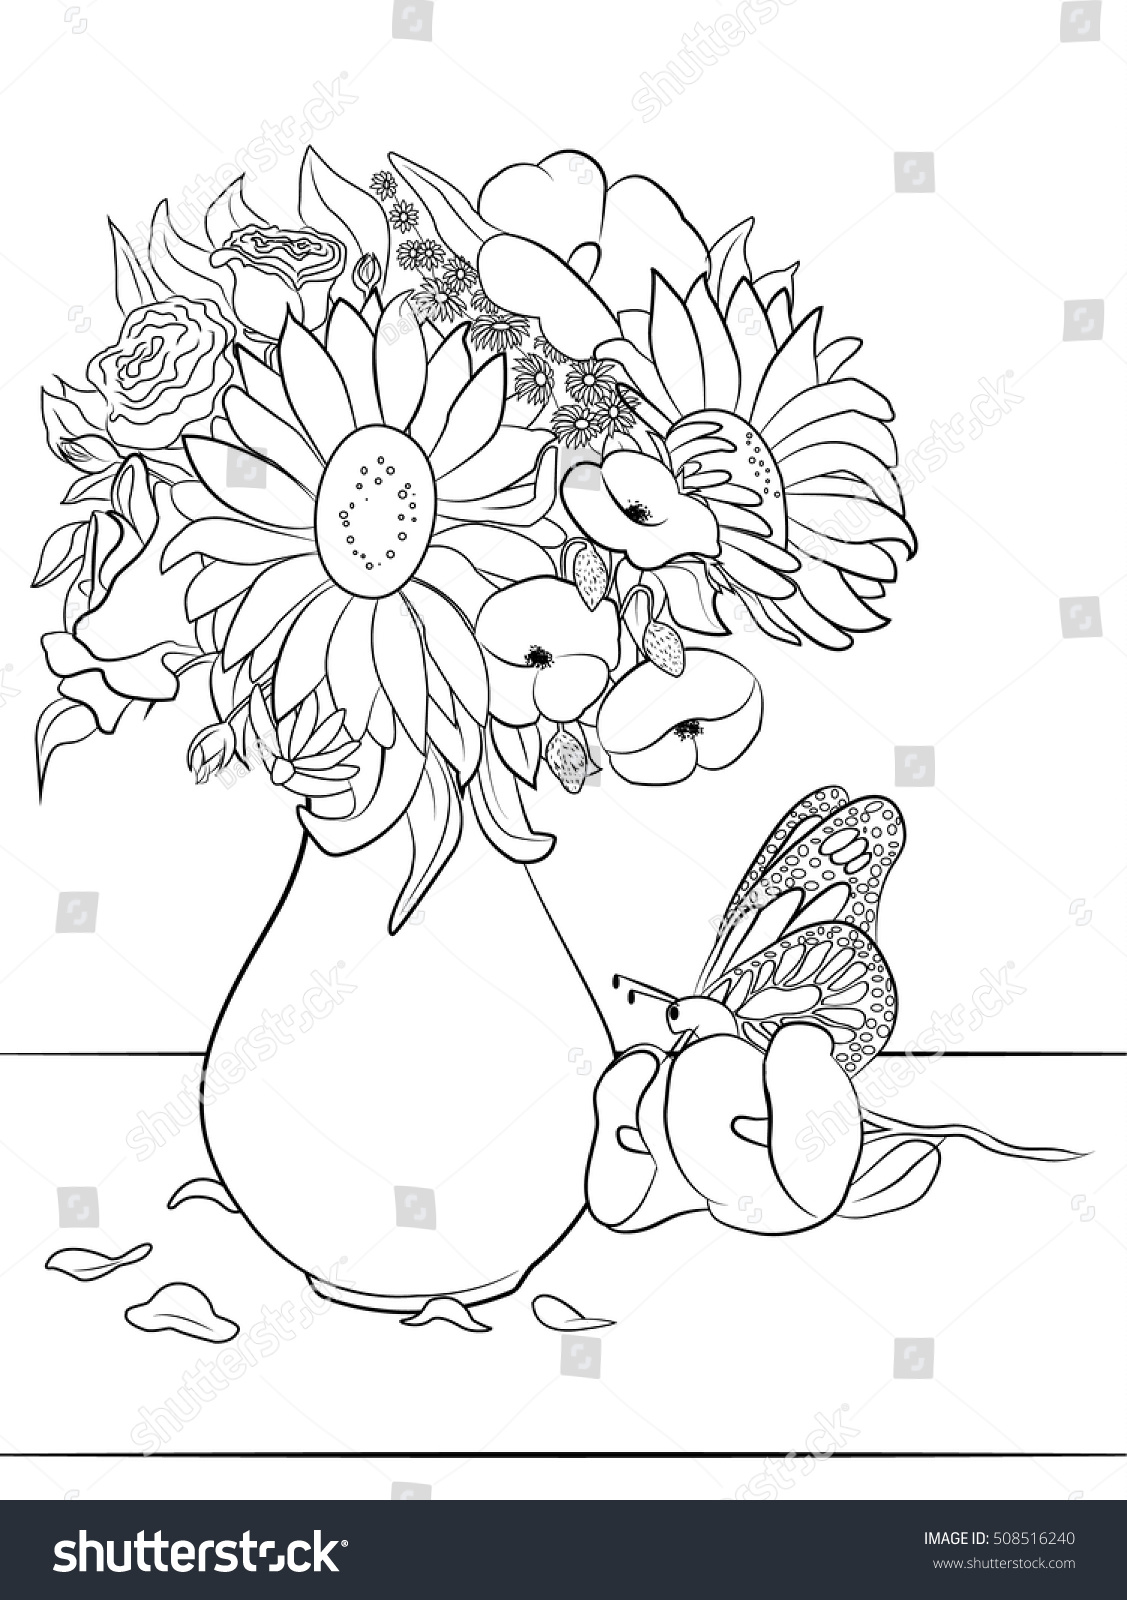 Vase with flowers  Coloring page for adults and kids Flowers Page Adults Kids Stock Vector 508516240